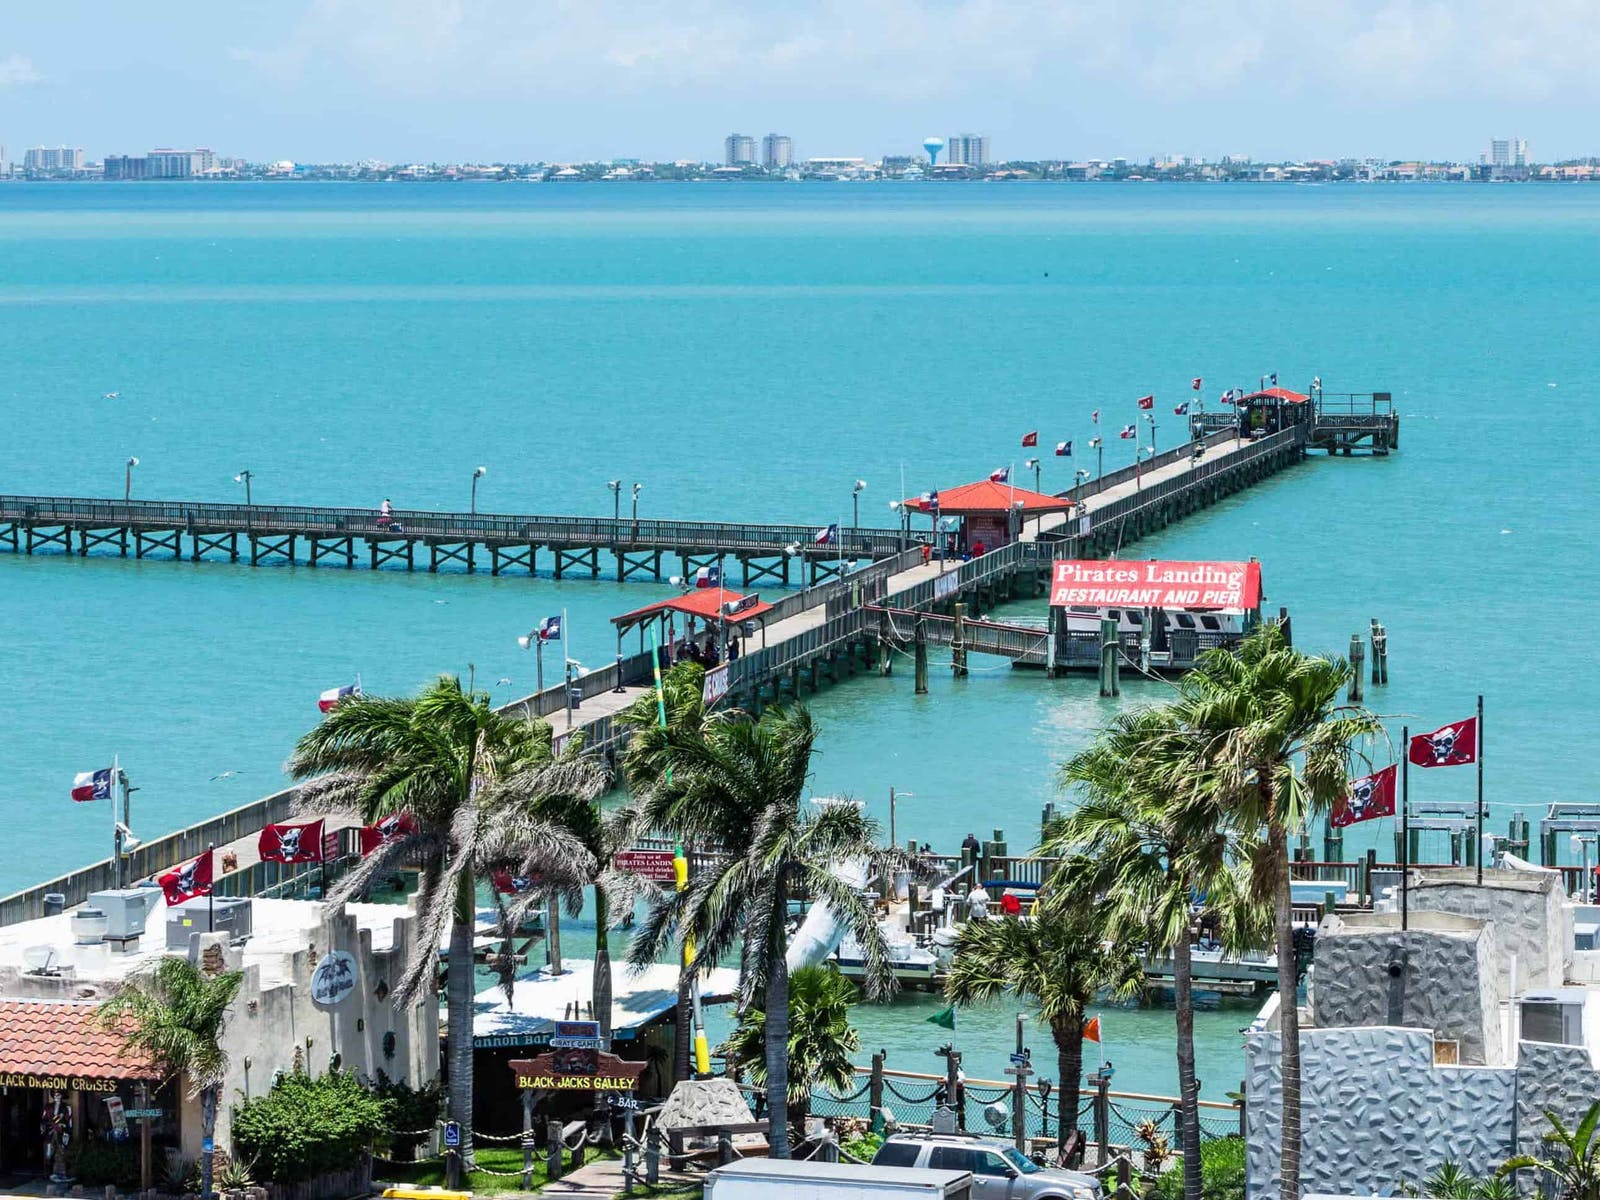 view of the pier and blue ocean in south padre island, texas